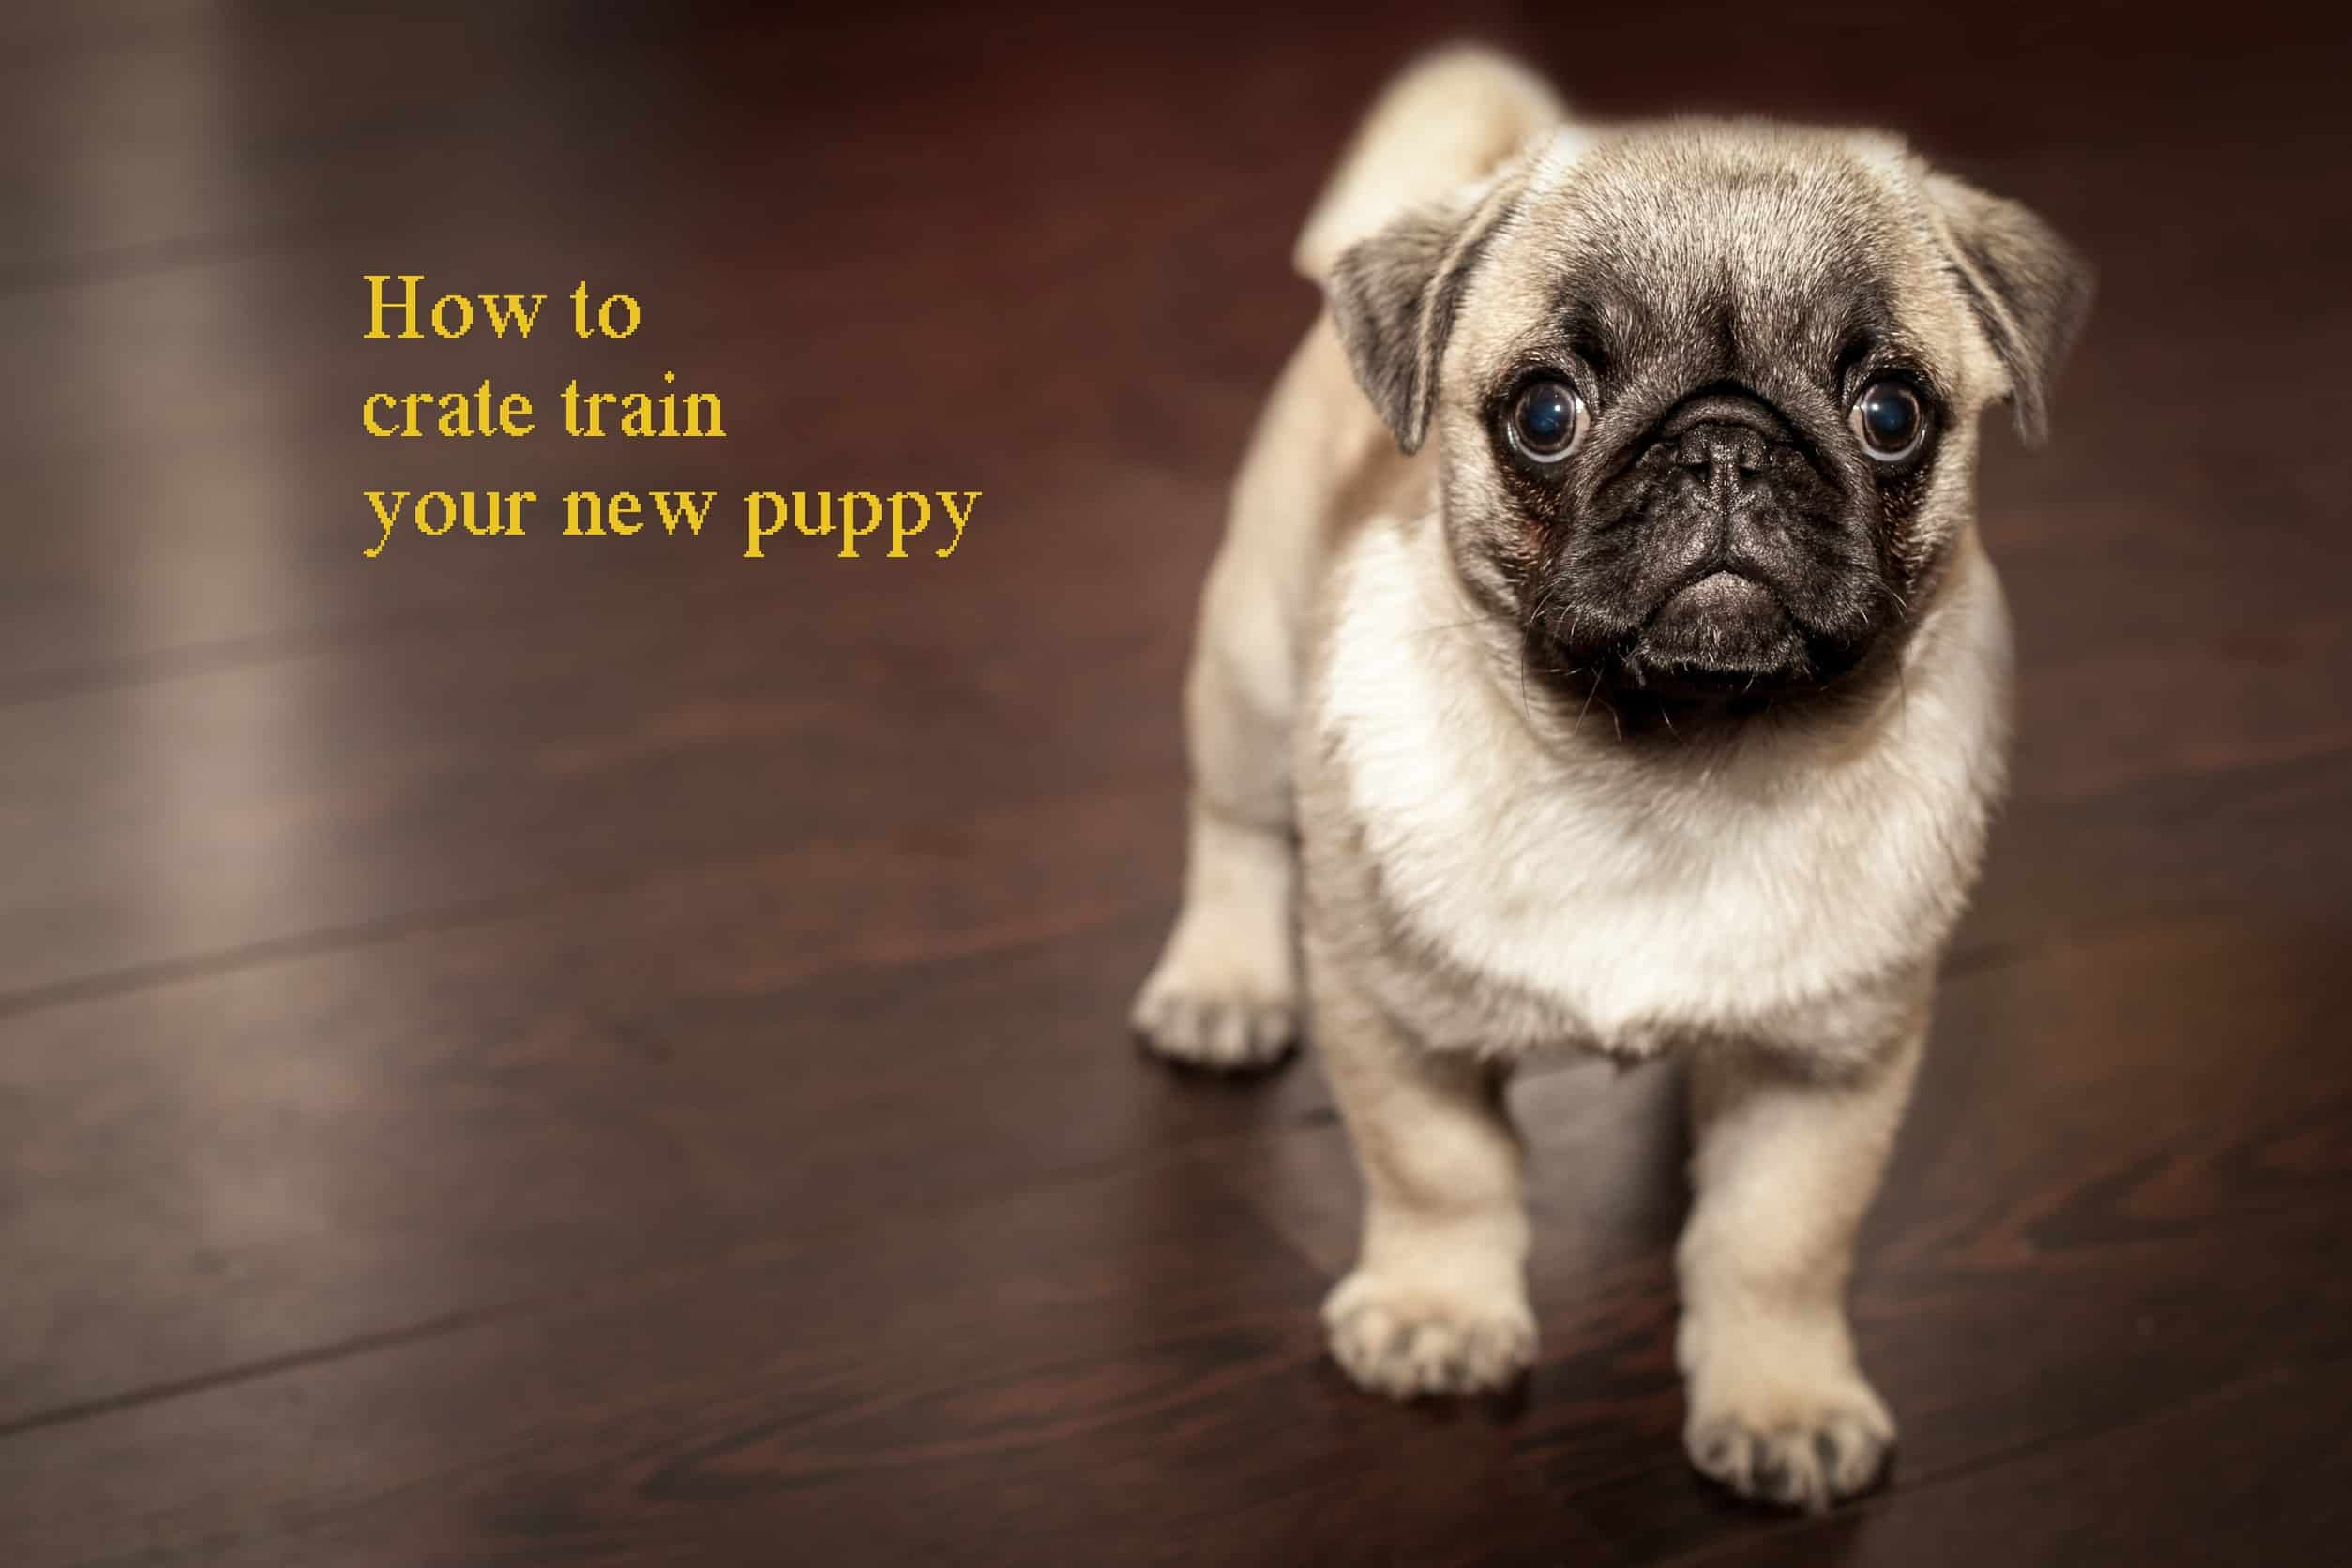 How to crate train your new puppy